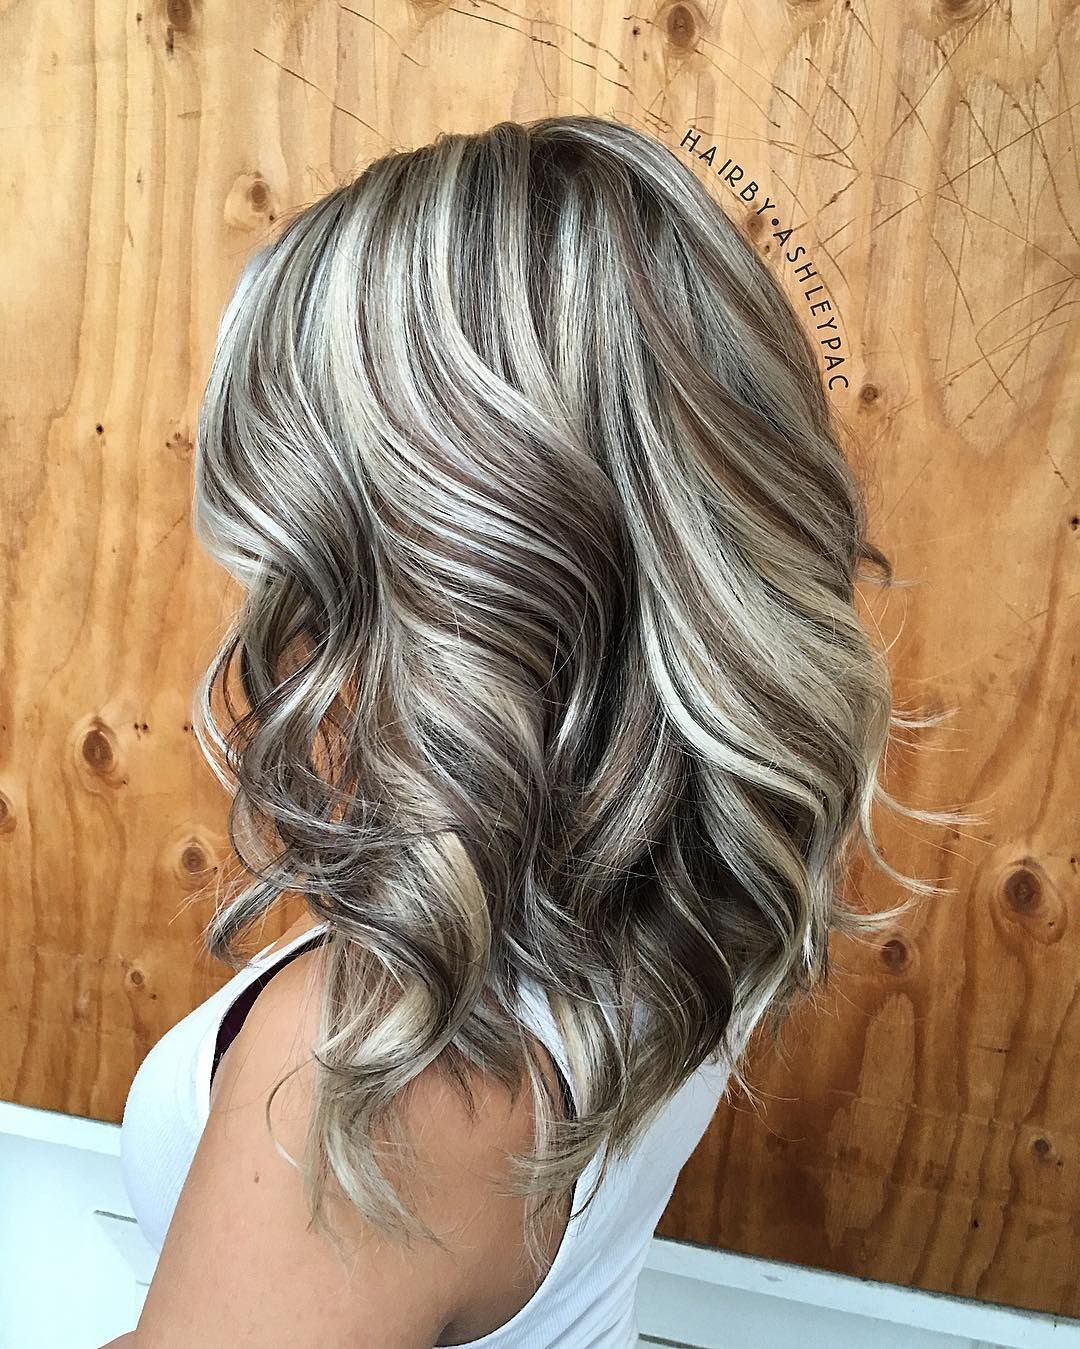 Pin By Maria Gonzalez On Beauty Hair Color Hair 2018 Hair